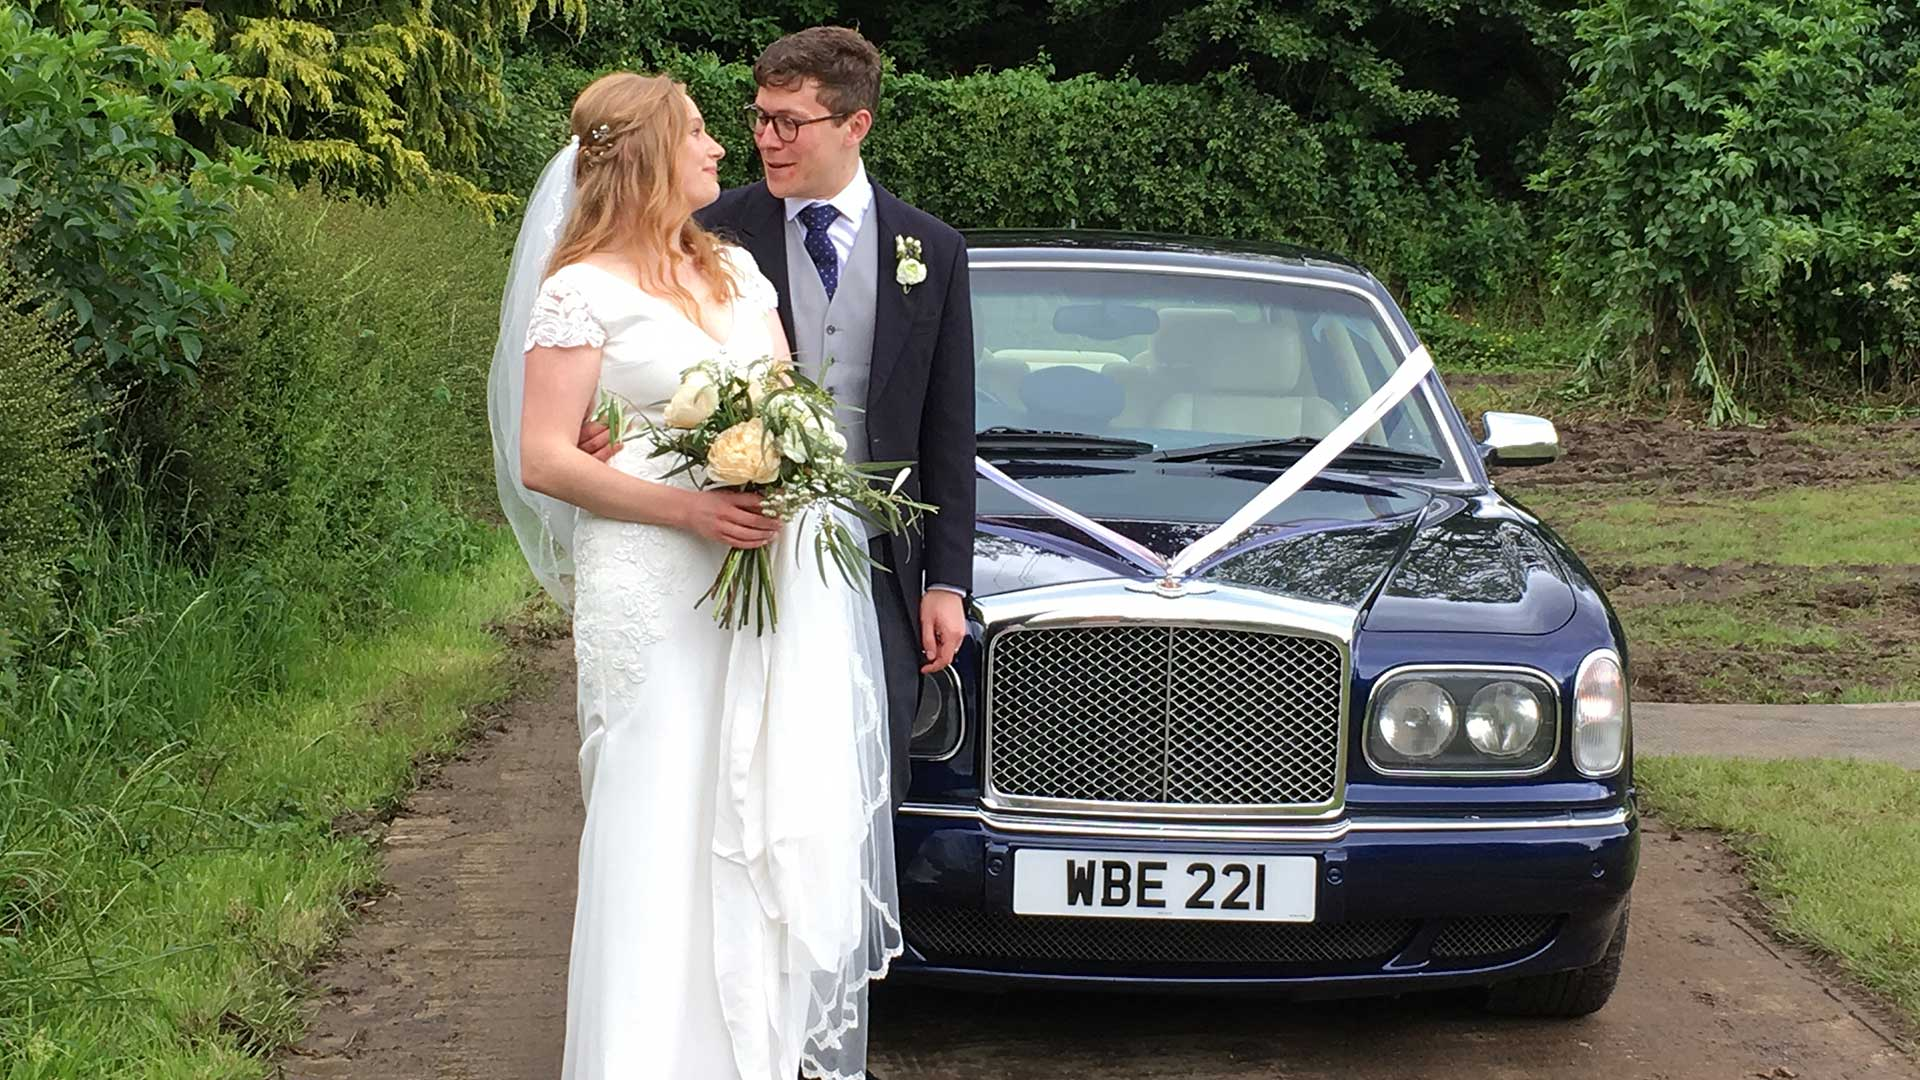 Ellie and Chris with the Bentley Arnage wedding car in Blue